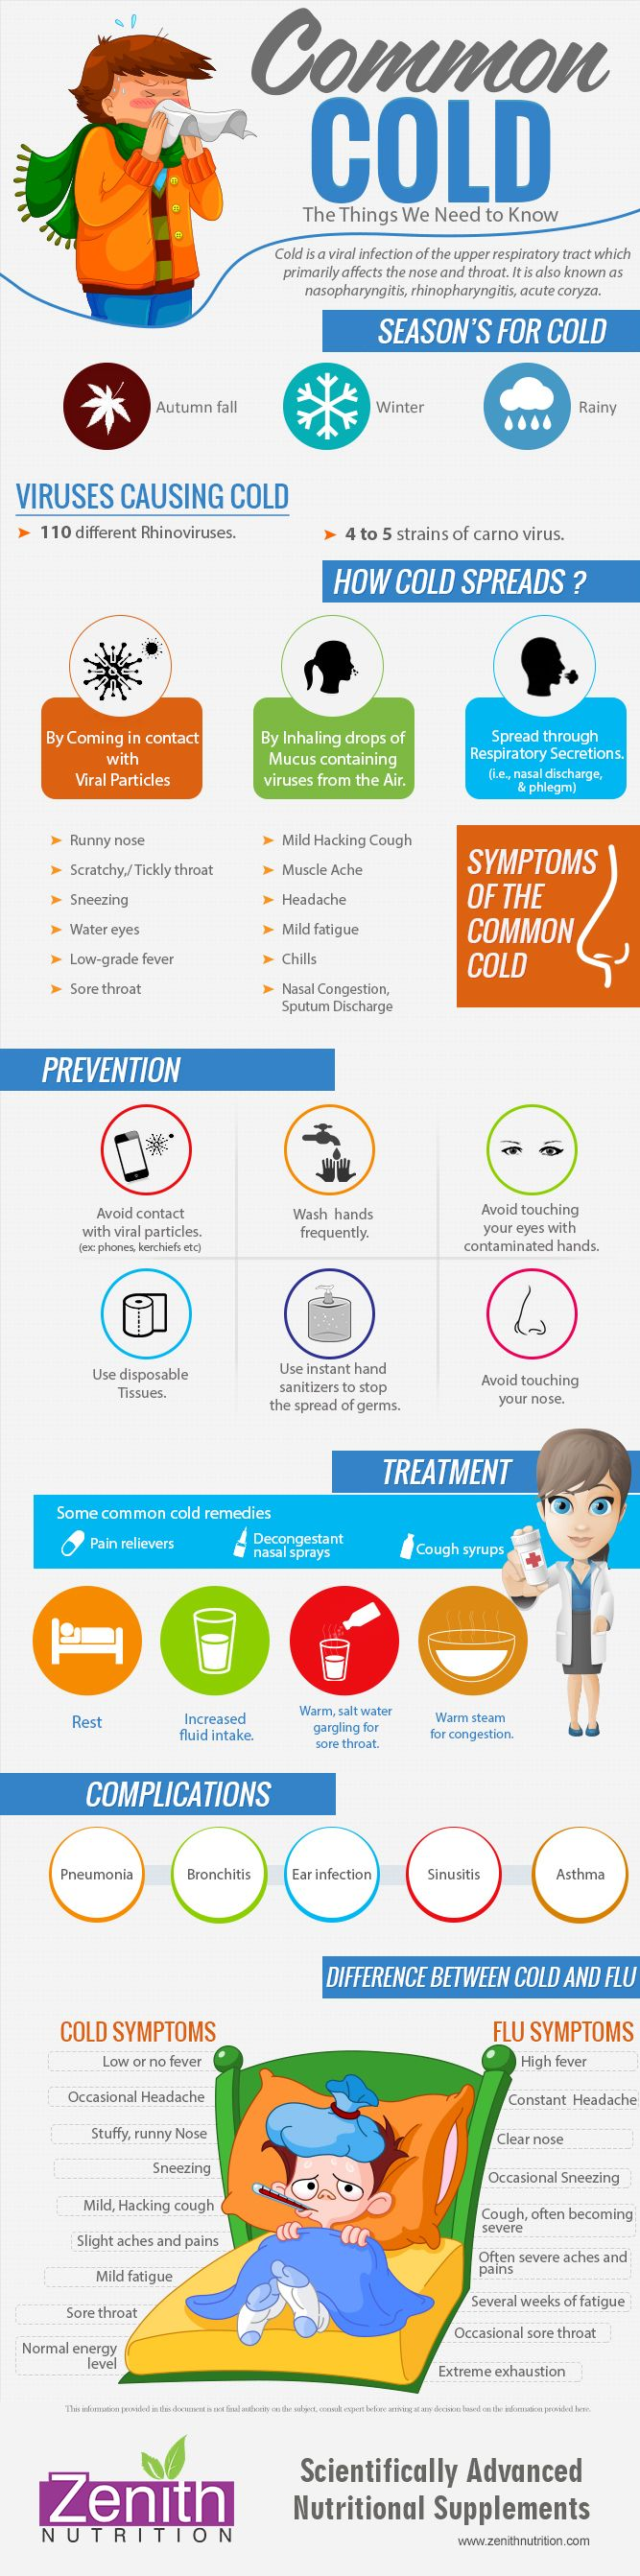 Common Cold - the things we need to know. Season's for cold, Viruses causing cold, How cold spreads, Symptoms of the common cold, Prevention, Treatment, Complications, Difference between cold and flu symptoms. Best supplements from Zenith Nutrition. Health Supplements. Nutritional Supplements. Health Infographics